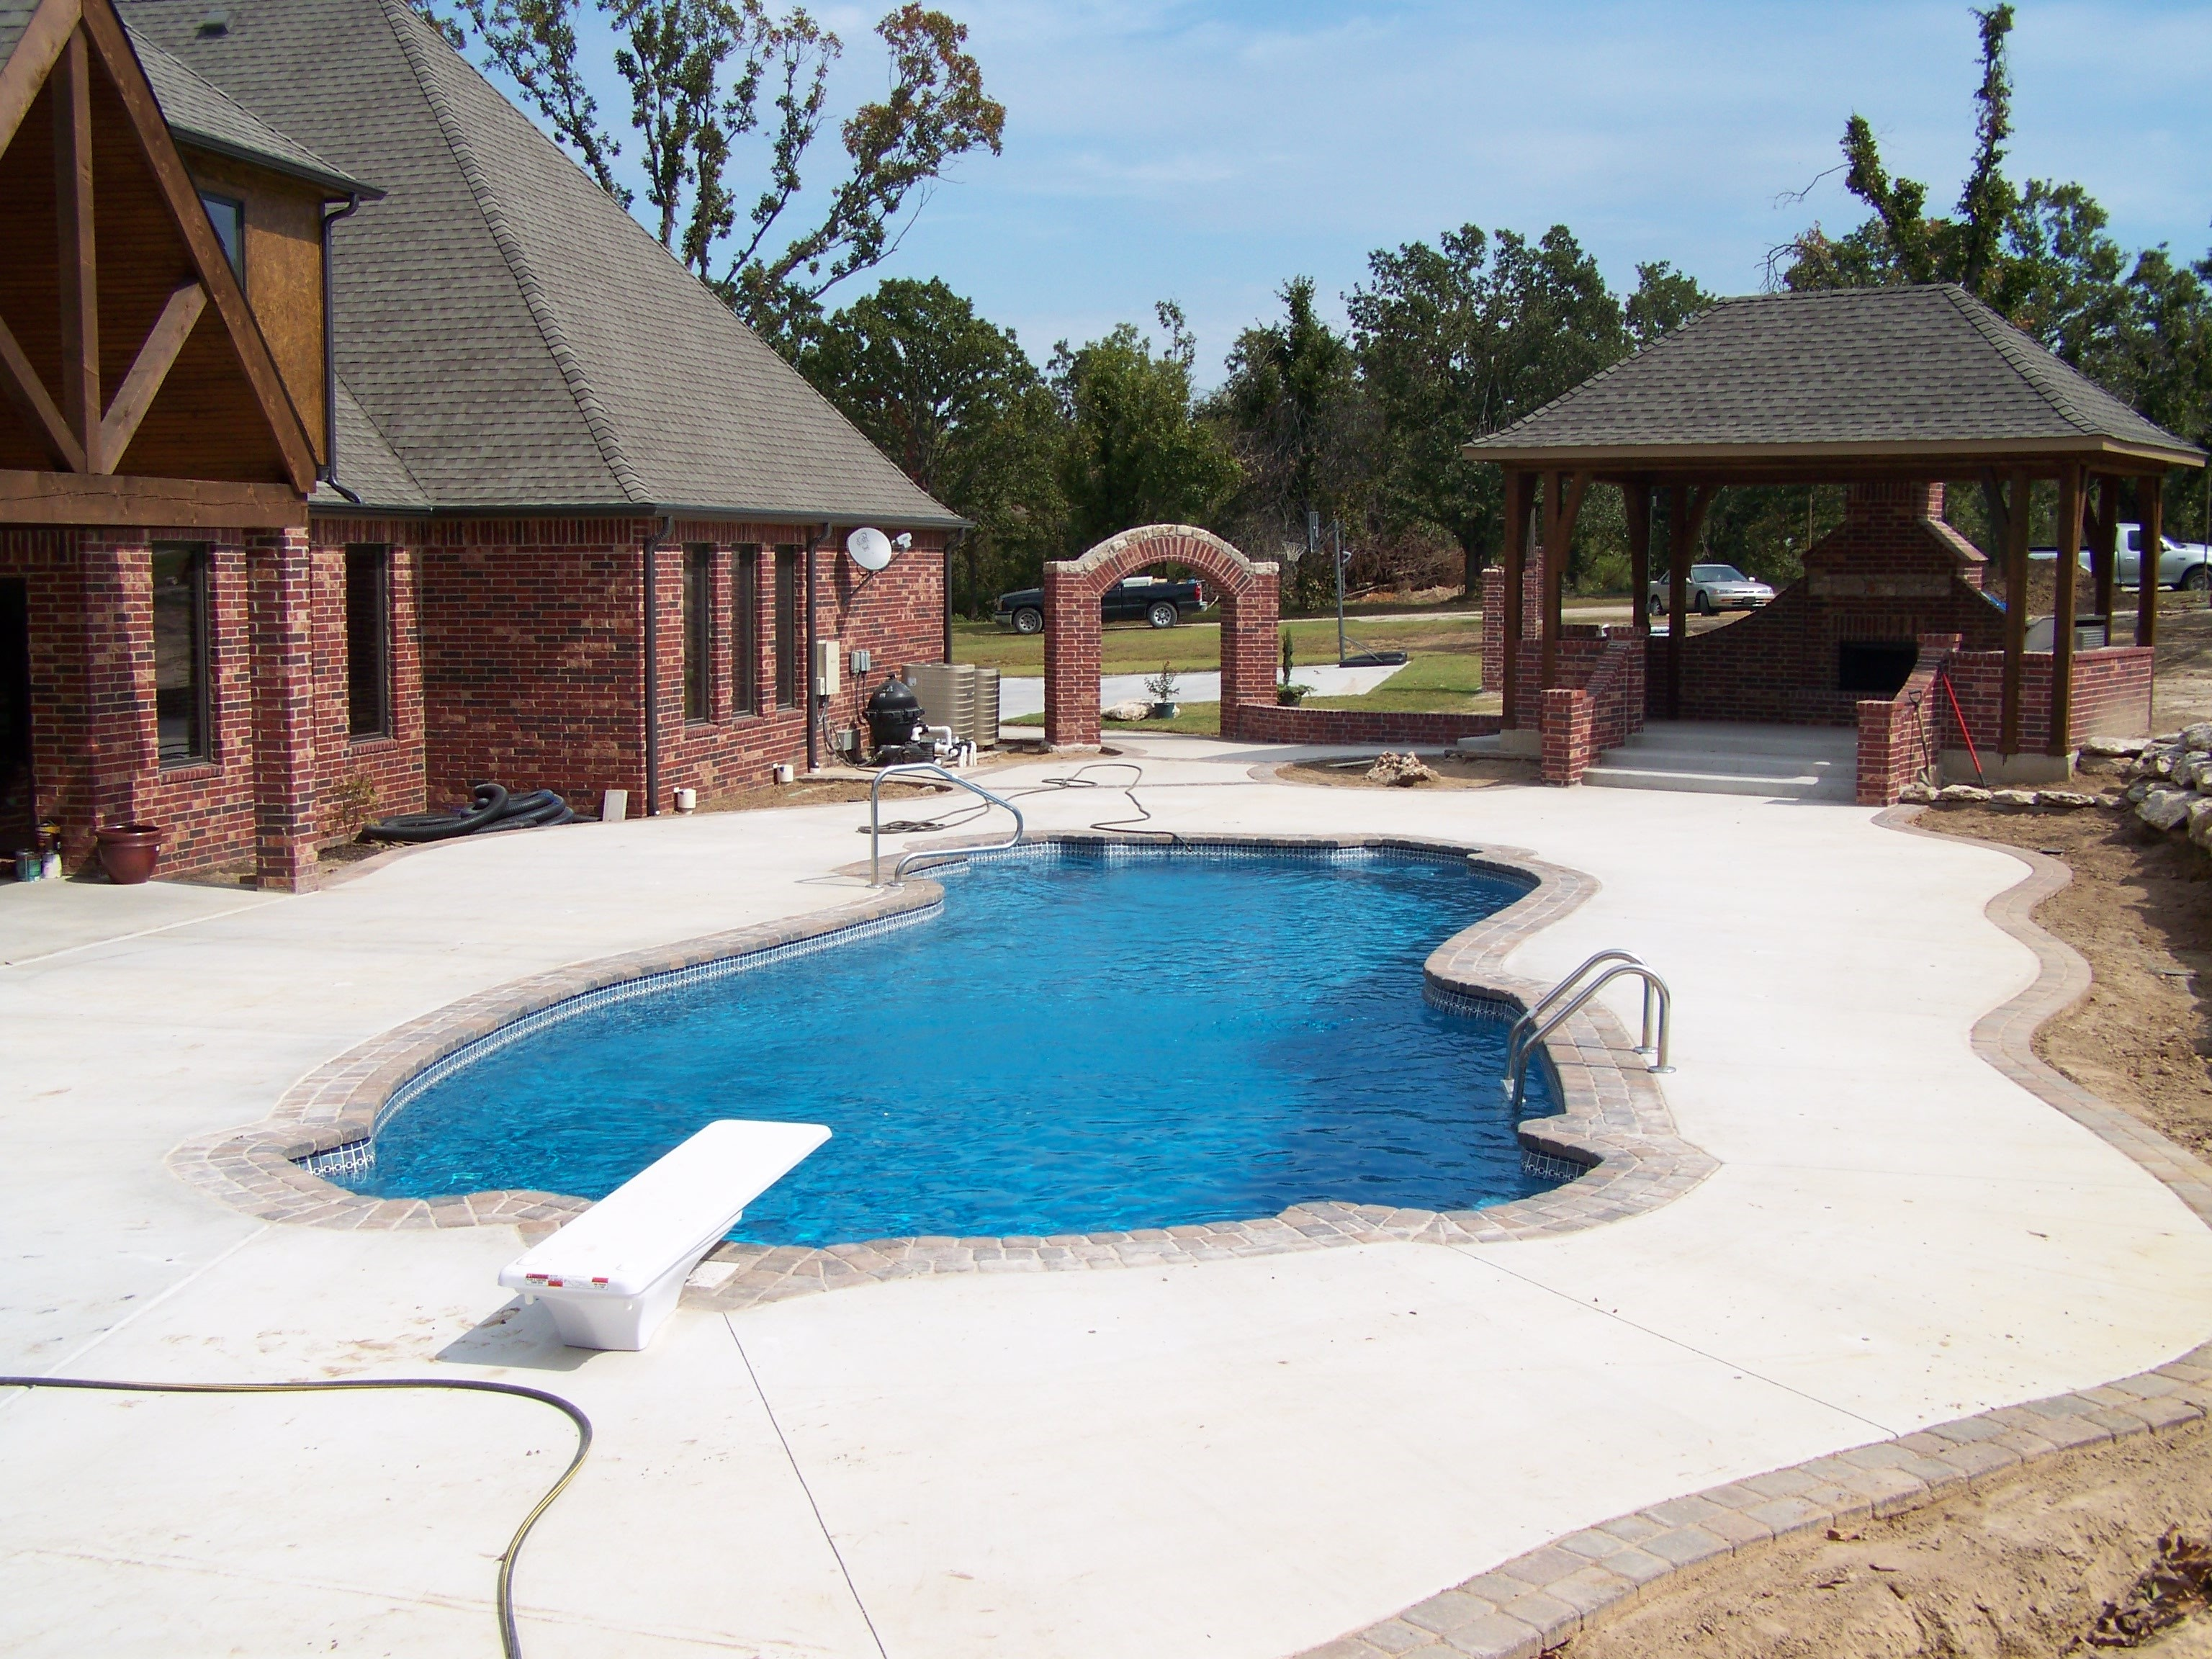 All Fiberglass Pool Gallery Images Swimming Pool Contractor Tulsa Ok